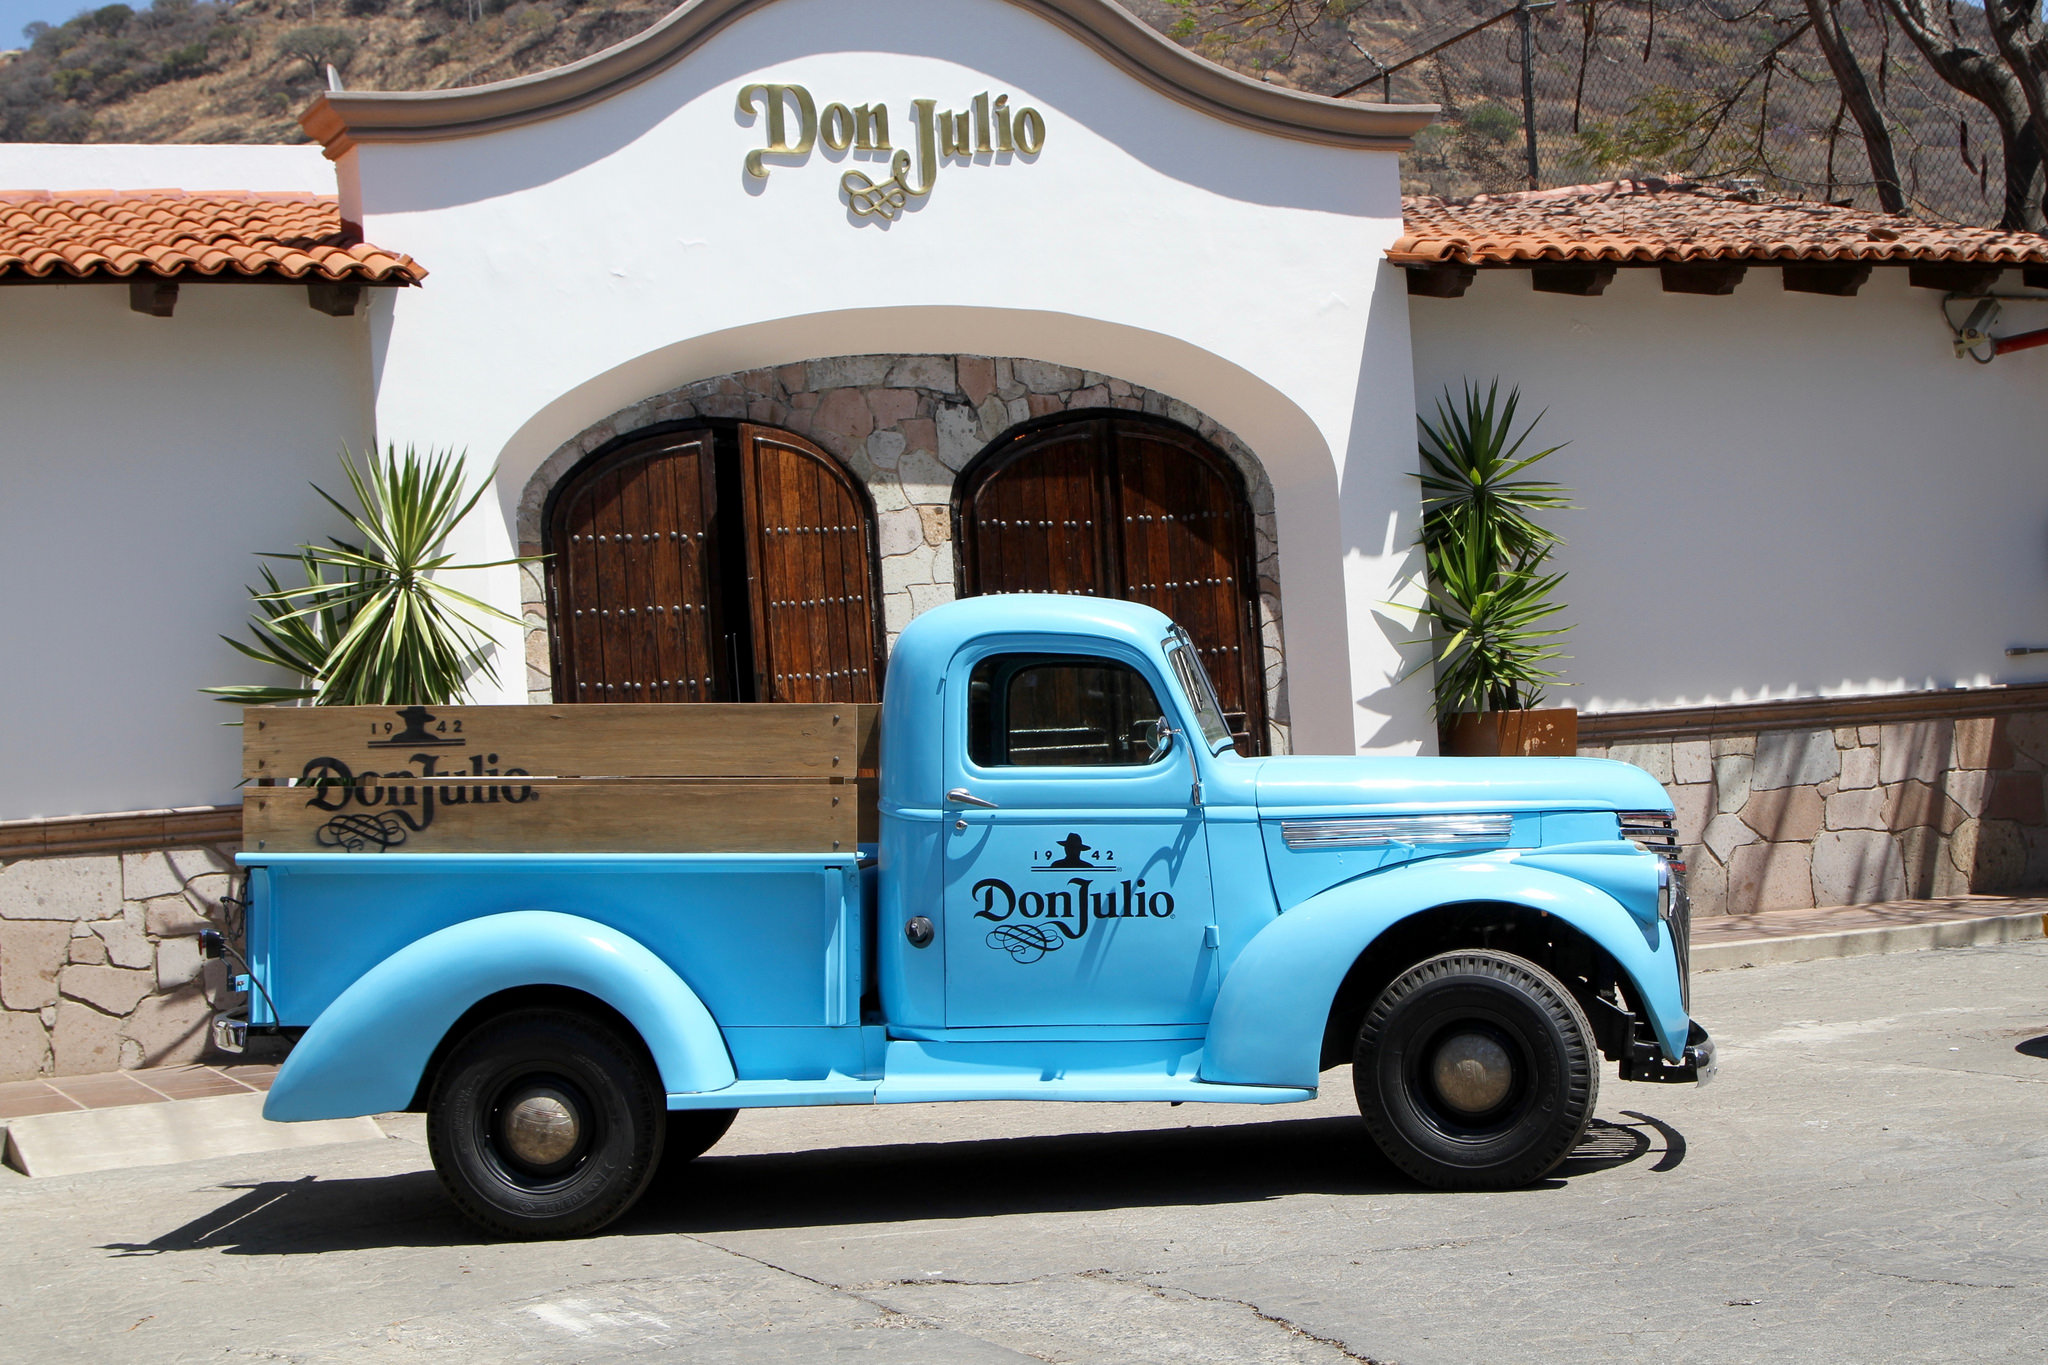 Tradition at Don Julio